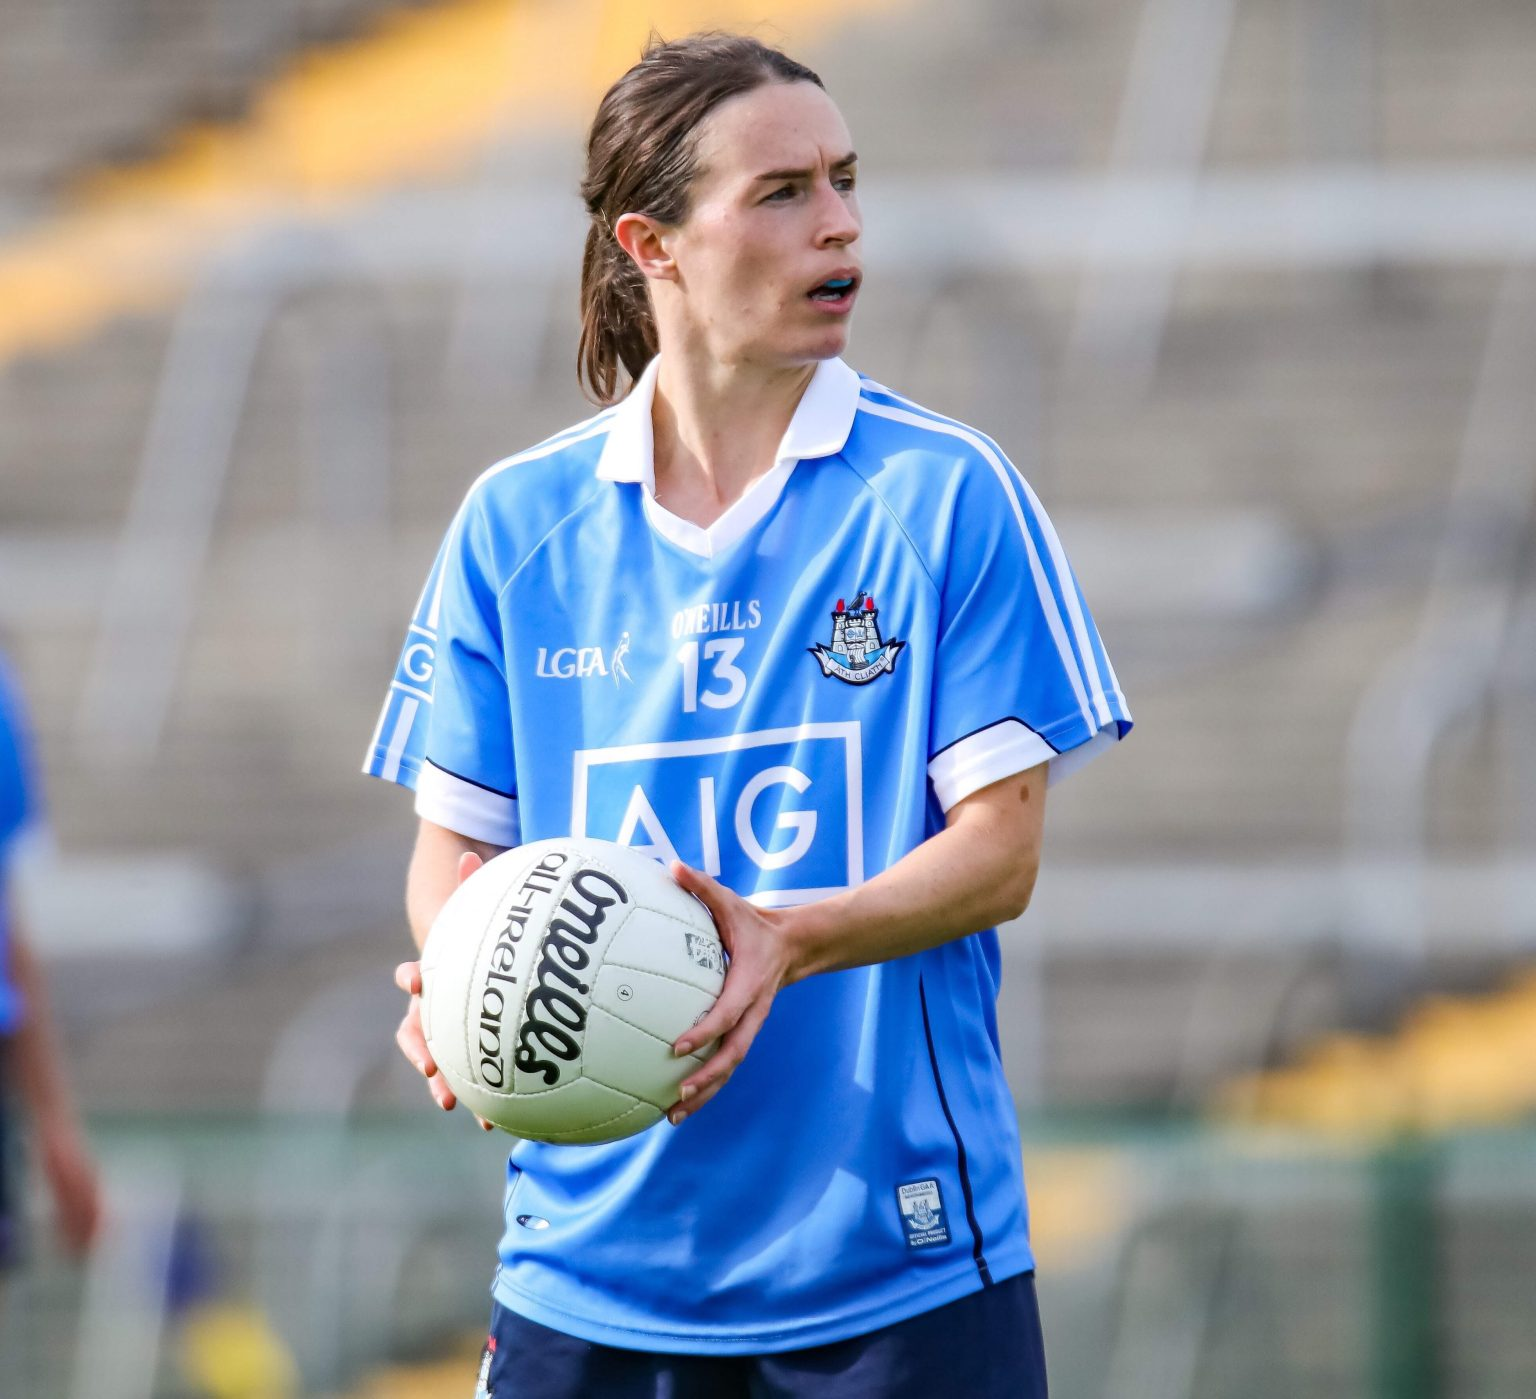 Dublin's Sinead Aherne In a sky blue jersey along with Siobhan Woods scored the goals to defeat Galway